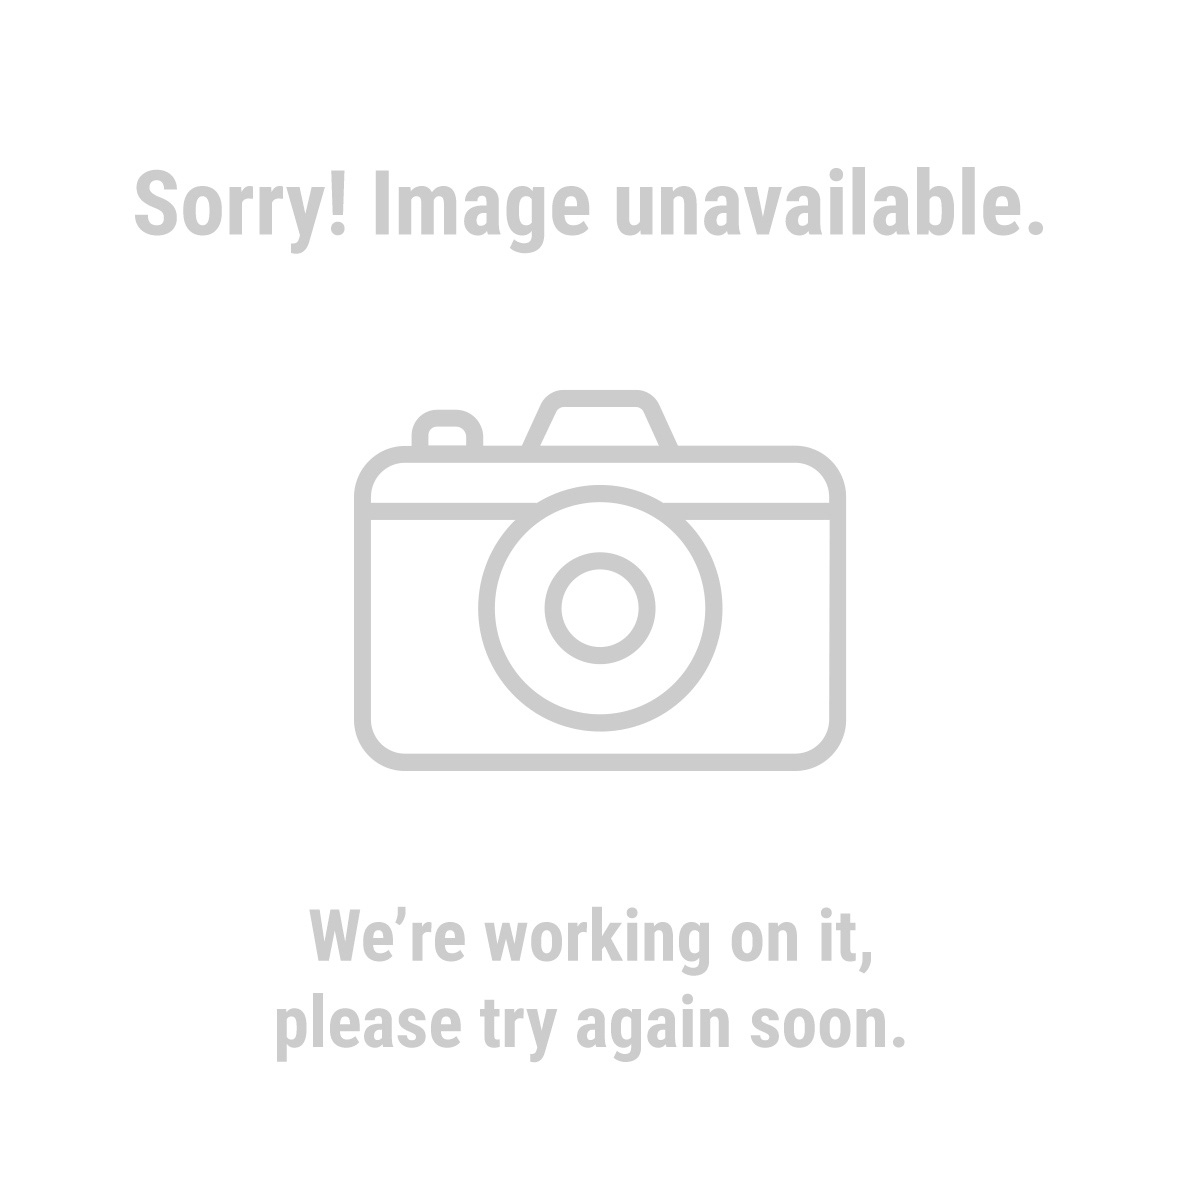 Badland Winches 61889 12000 lb. Off-Road Vehicle Electric Winch with Automatic Load-Holding Brake